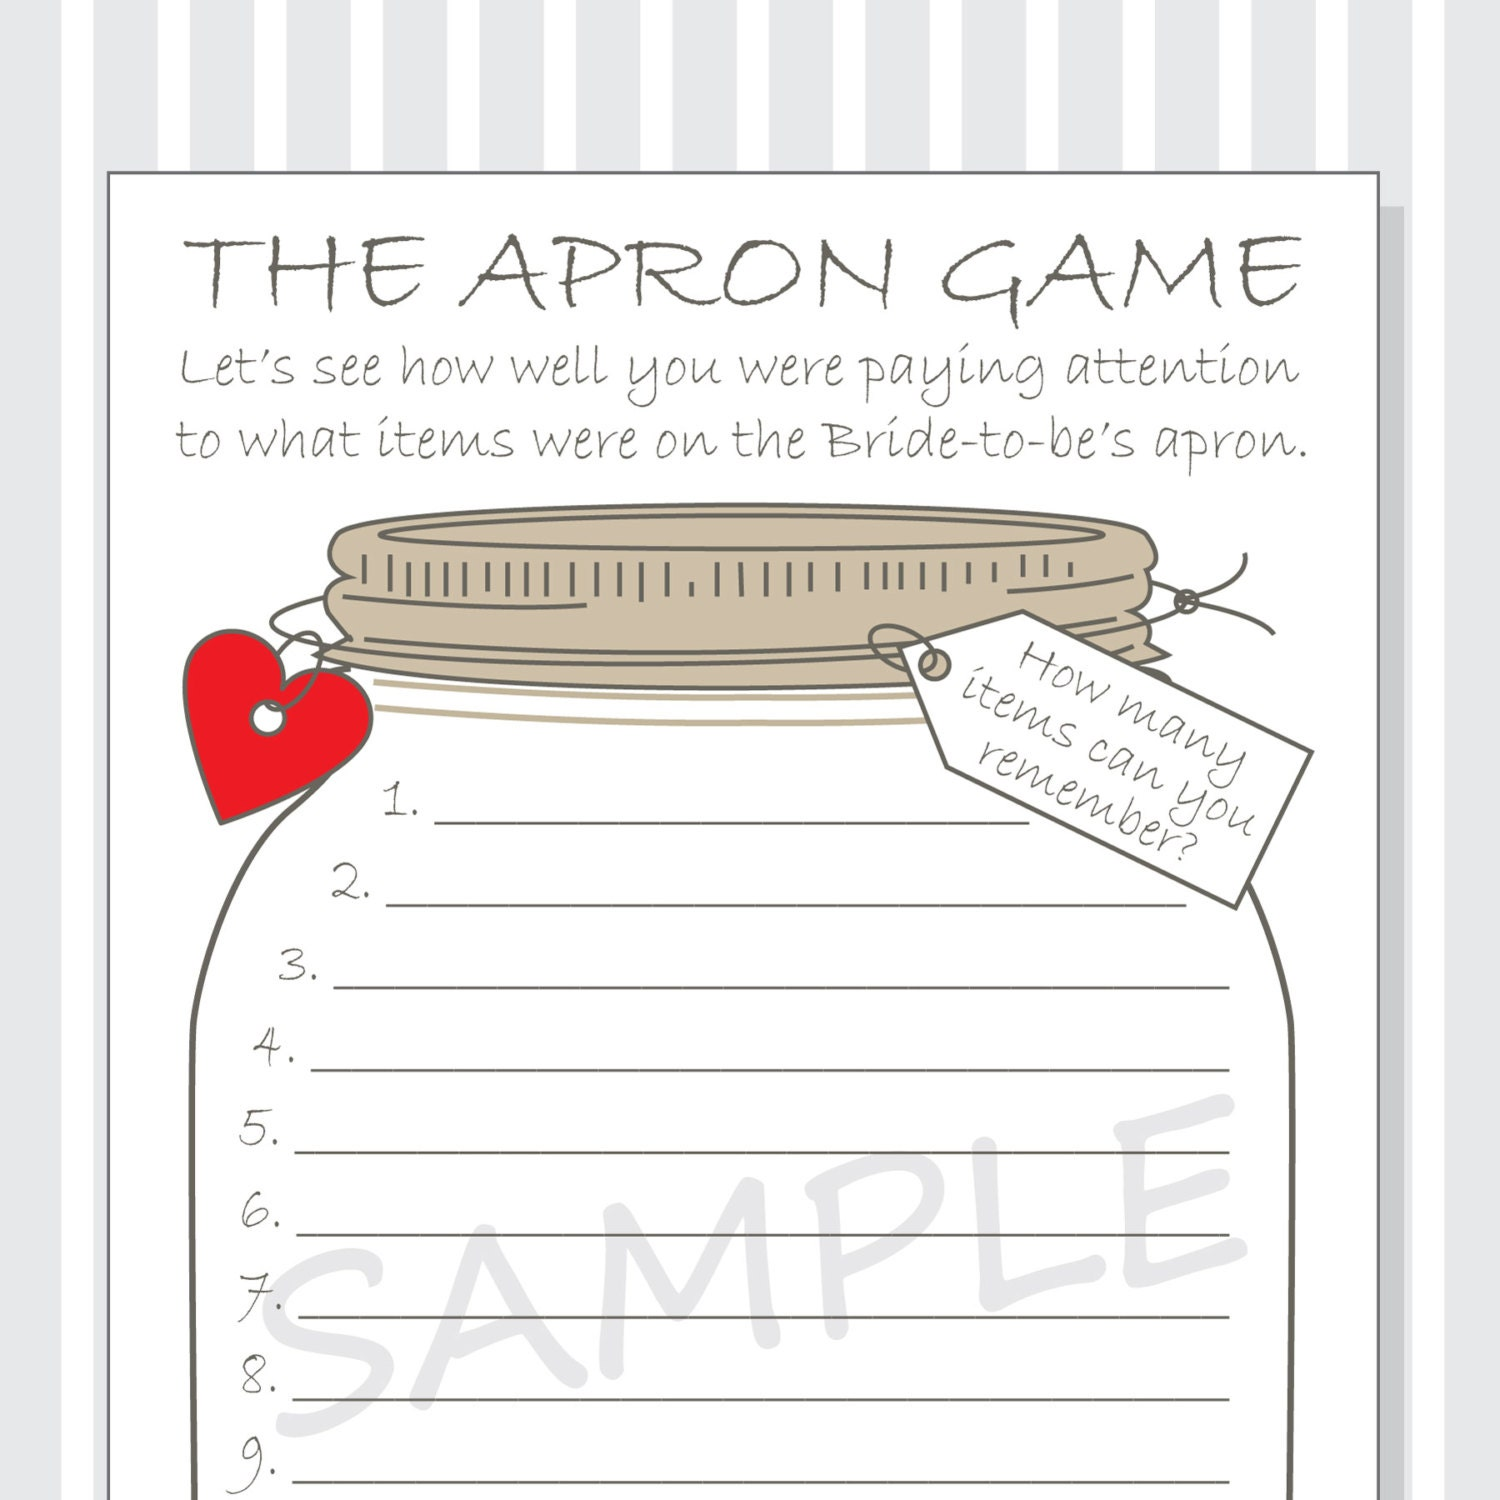 White lace apron wedding - Bridal Shower The Apron Game Printable Cards Diy Rustic Mason Jar Design Red Purple And Pink Hearts